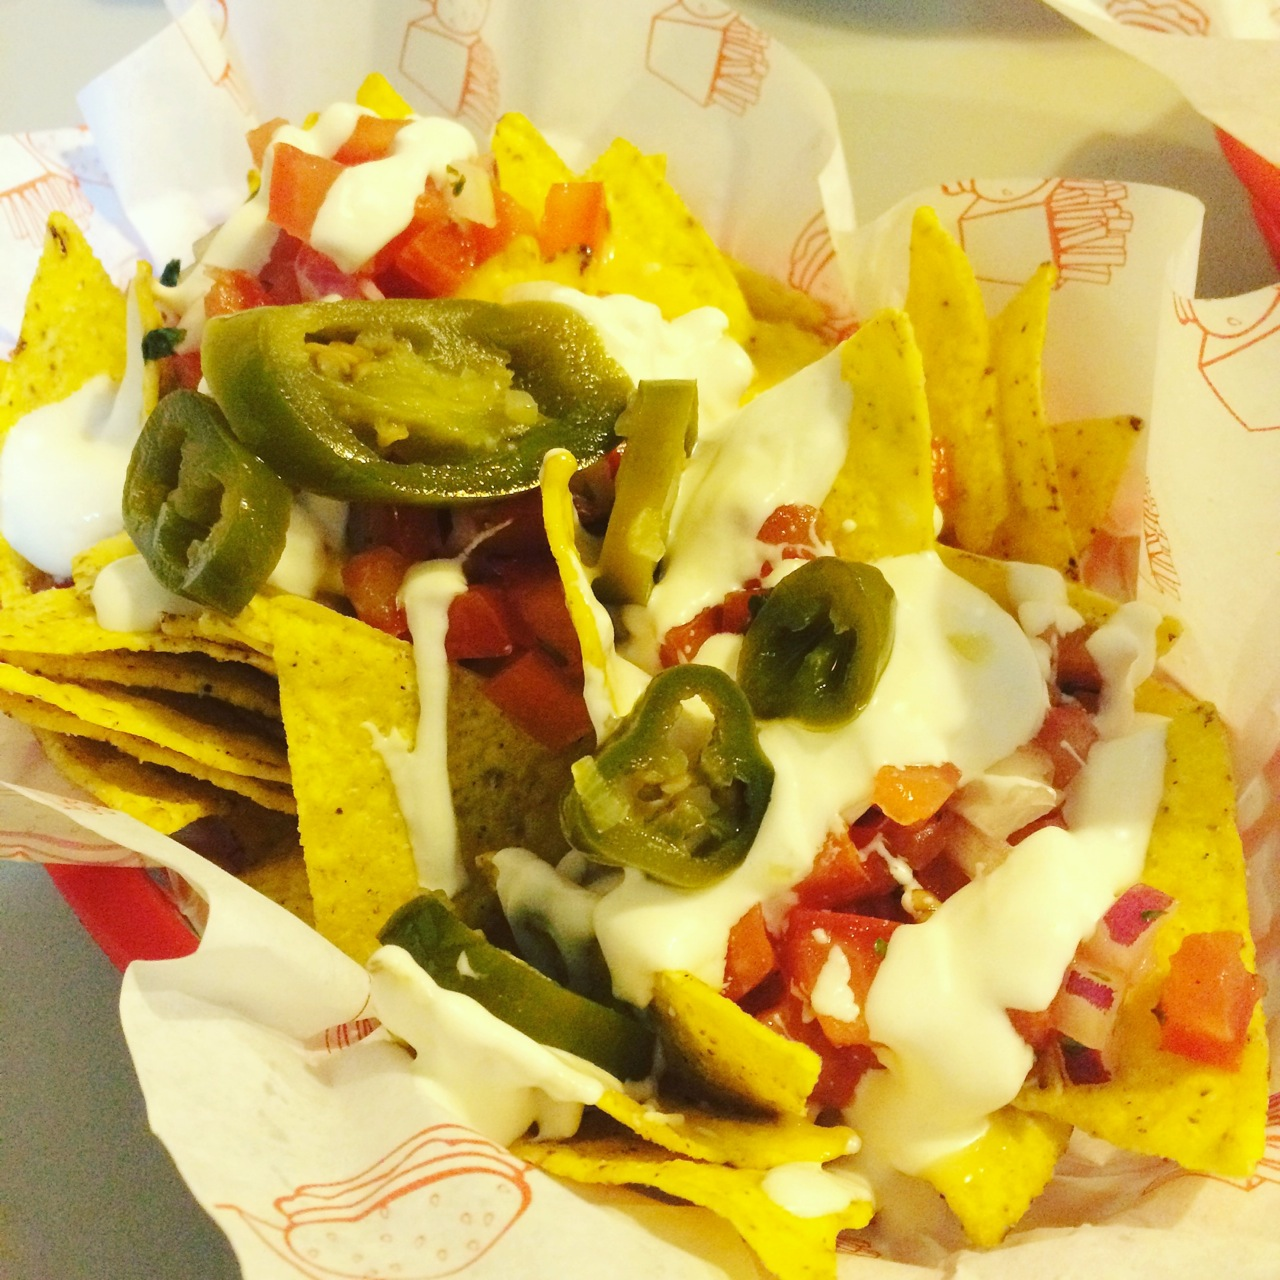 https://i1.wp.com/fatgayvegan.com/wp-content/uploads/2016/01/v-rev-nachos-1.jpg?fit=1280%2C1280